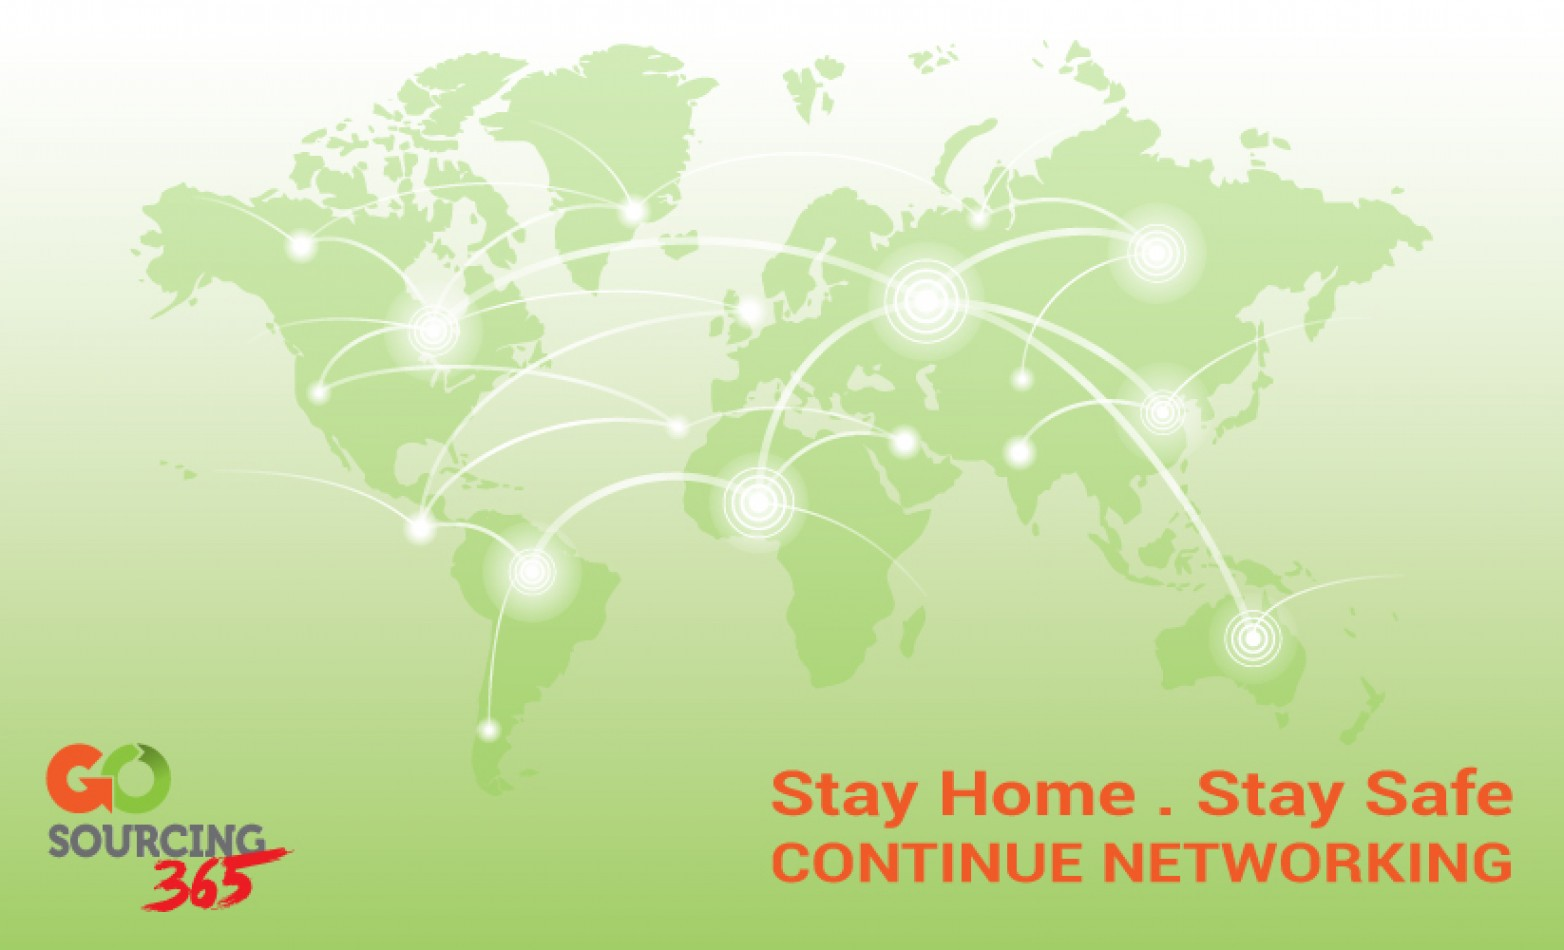 Stay Home, Stay Safe and Stay Connected with the Global Textile & Apparel Sector through GoSourcing365.com